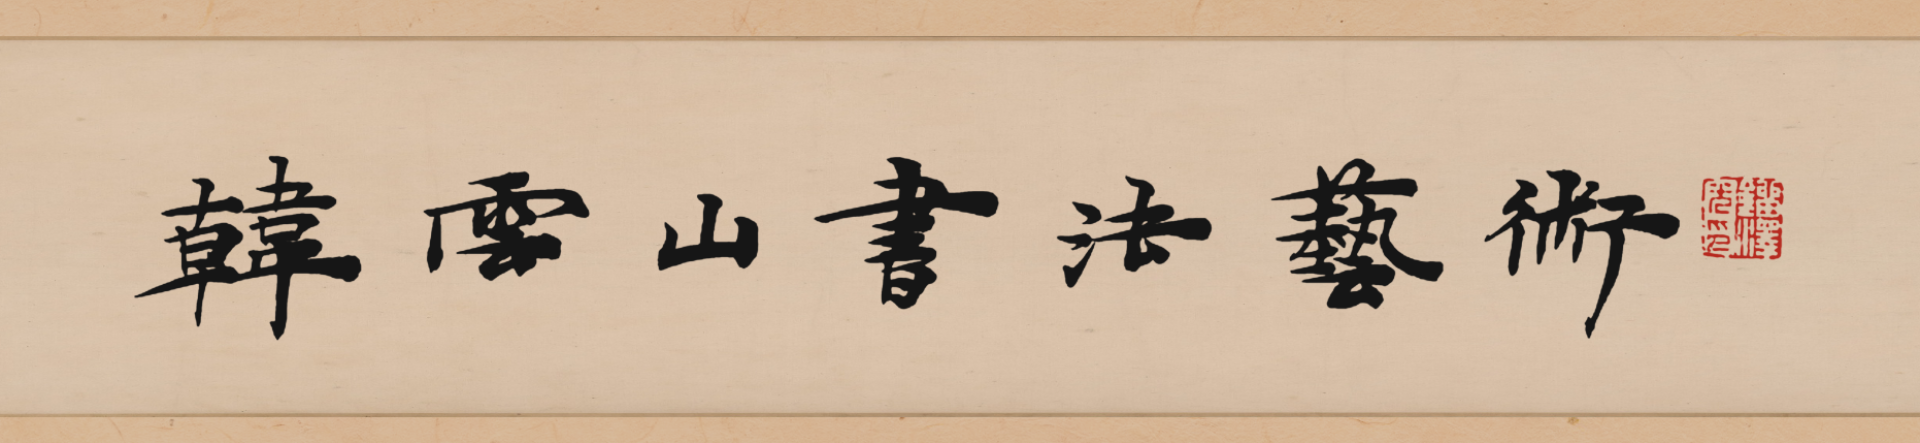 The Art of Chinese Calligraphy by Han Yunshan